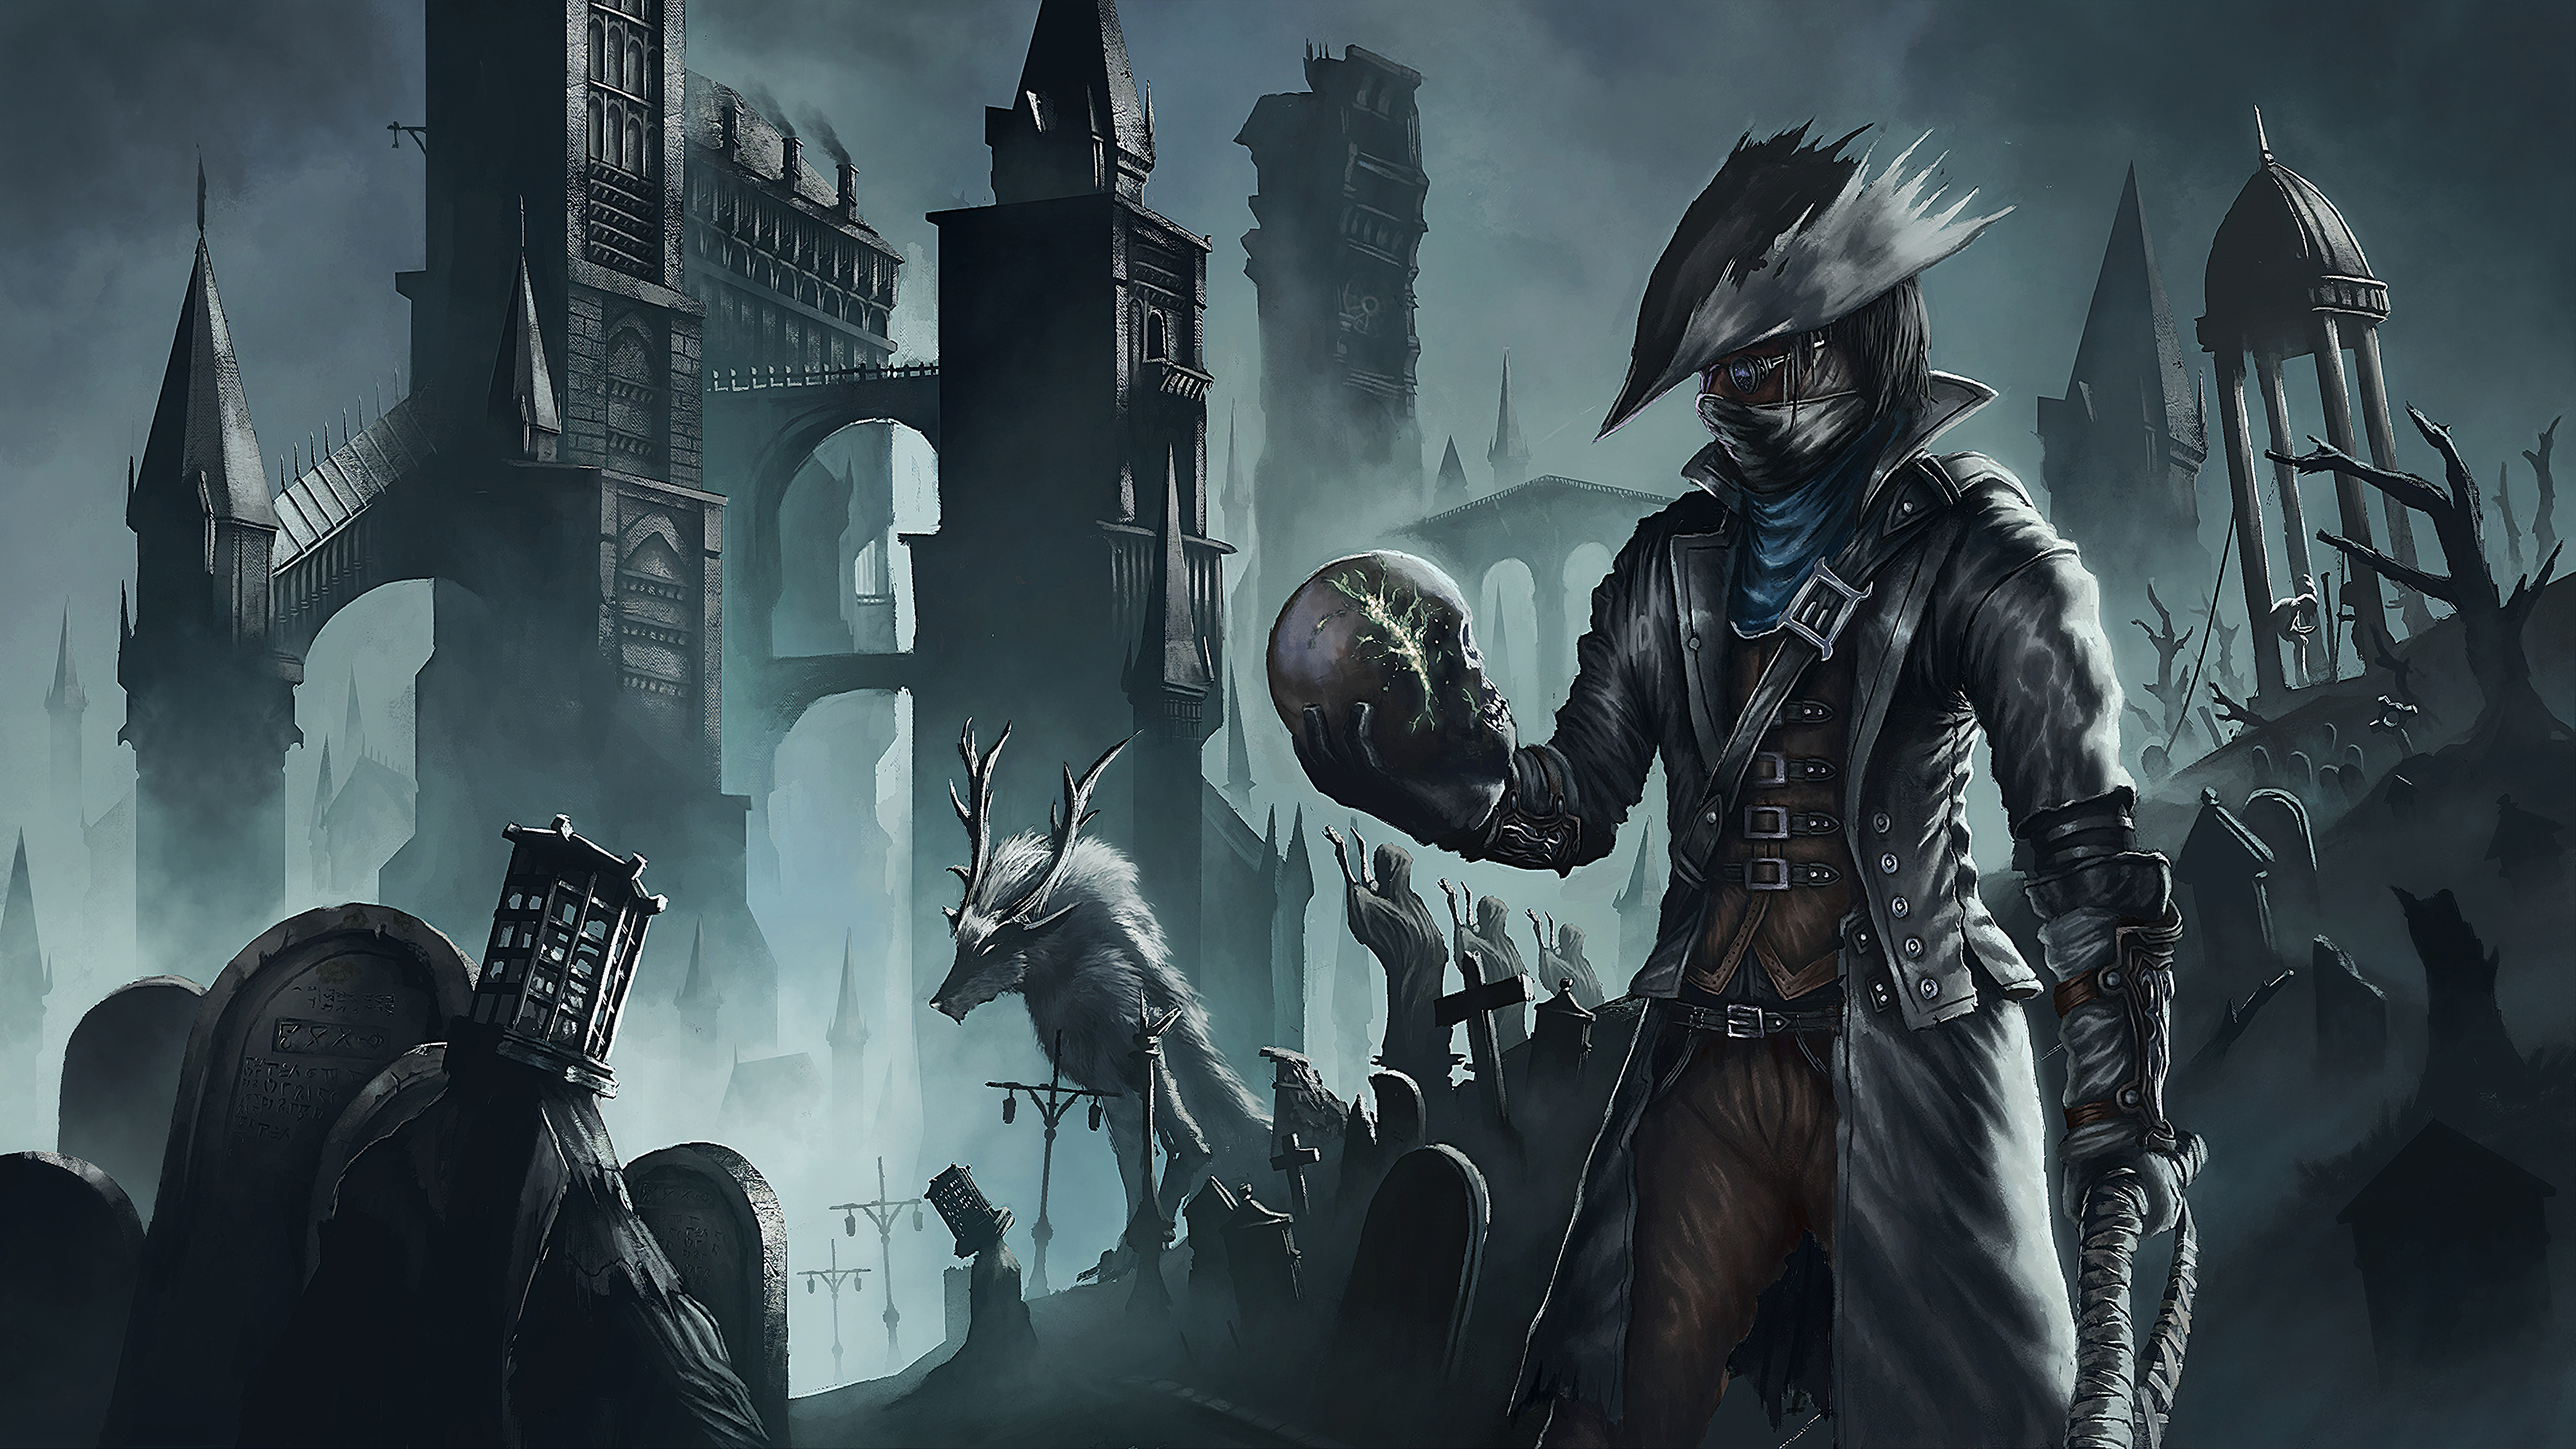 Bloodborne Hd Wallpapers Posted By Samantha Sellers